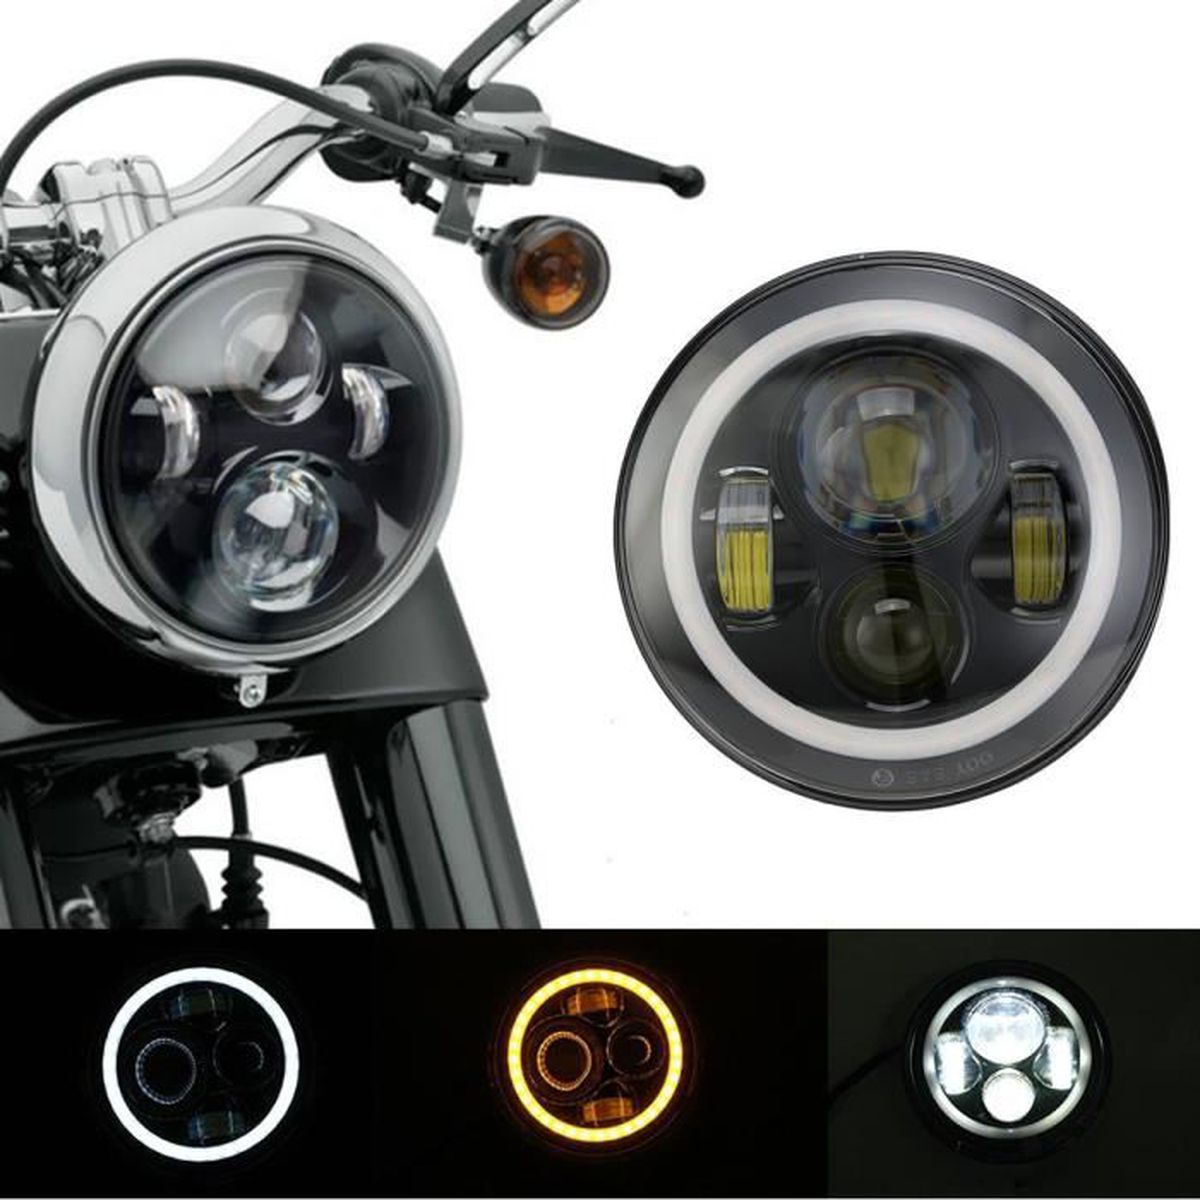 7 moto phare projecteur daymaker led blanche ambre halo pour harley achat vente phares. Black Bedroom Furniture Sets. Home Design Ideas